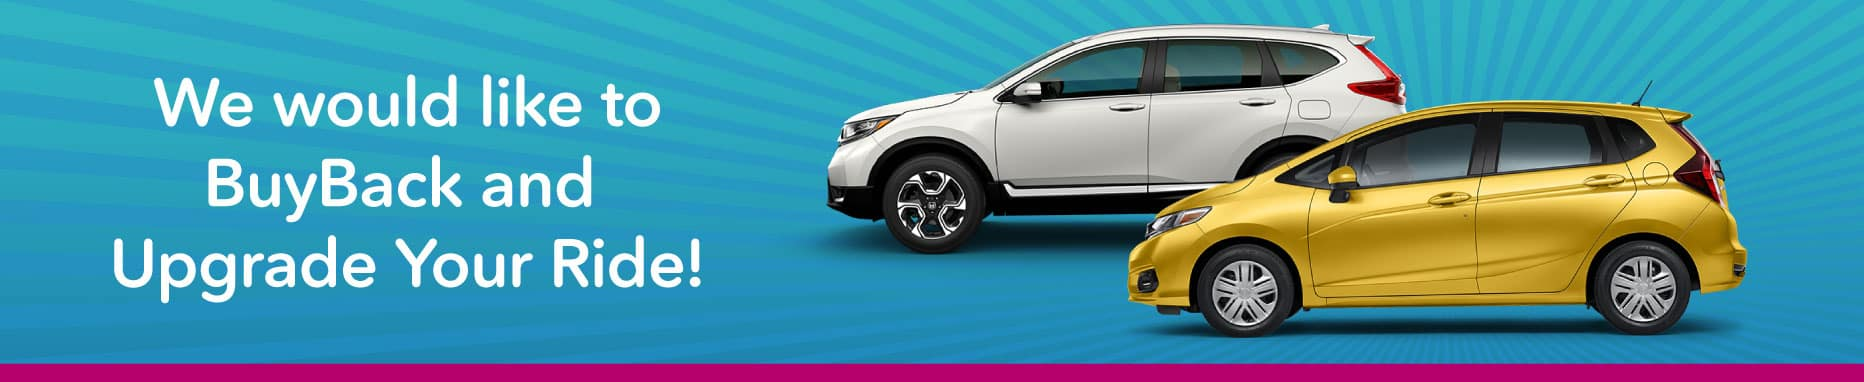 BuyBack and Upgrade Your Vehicle!